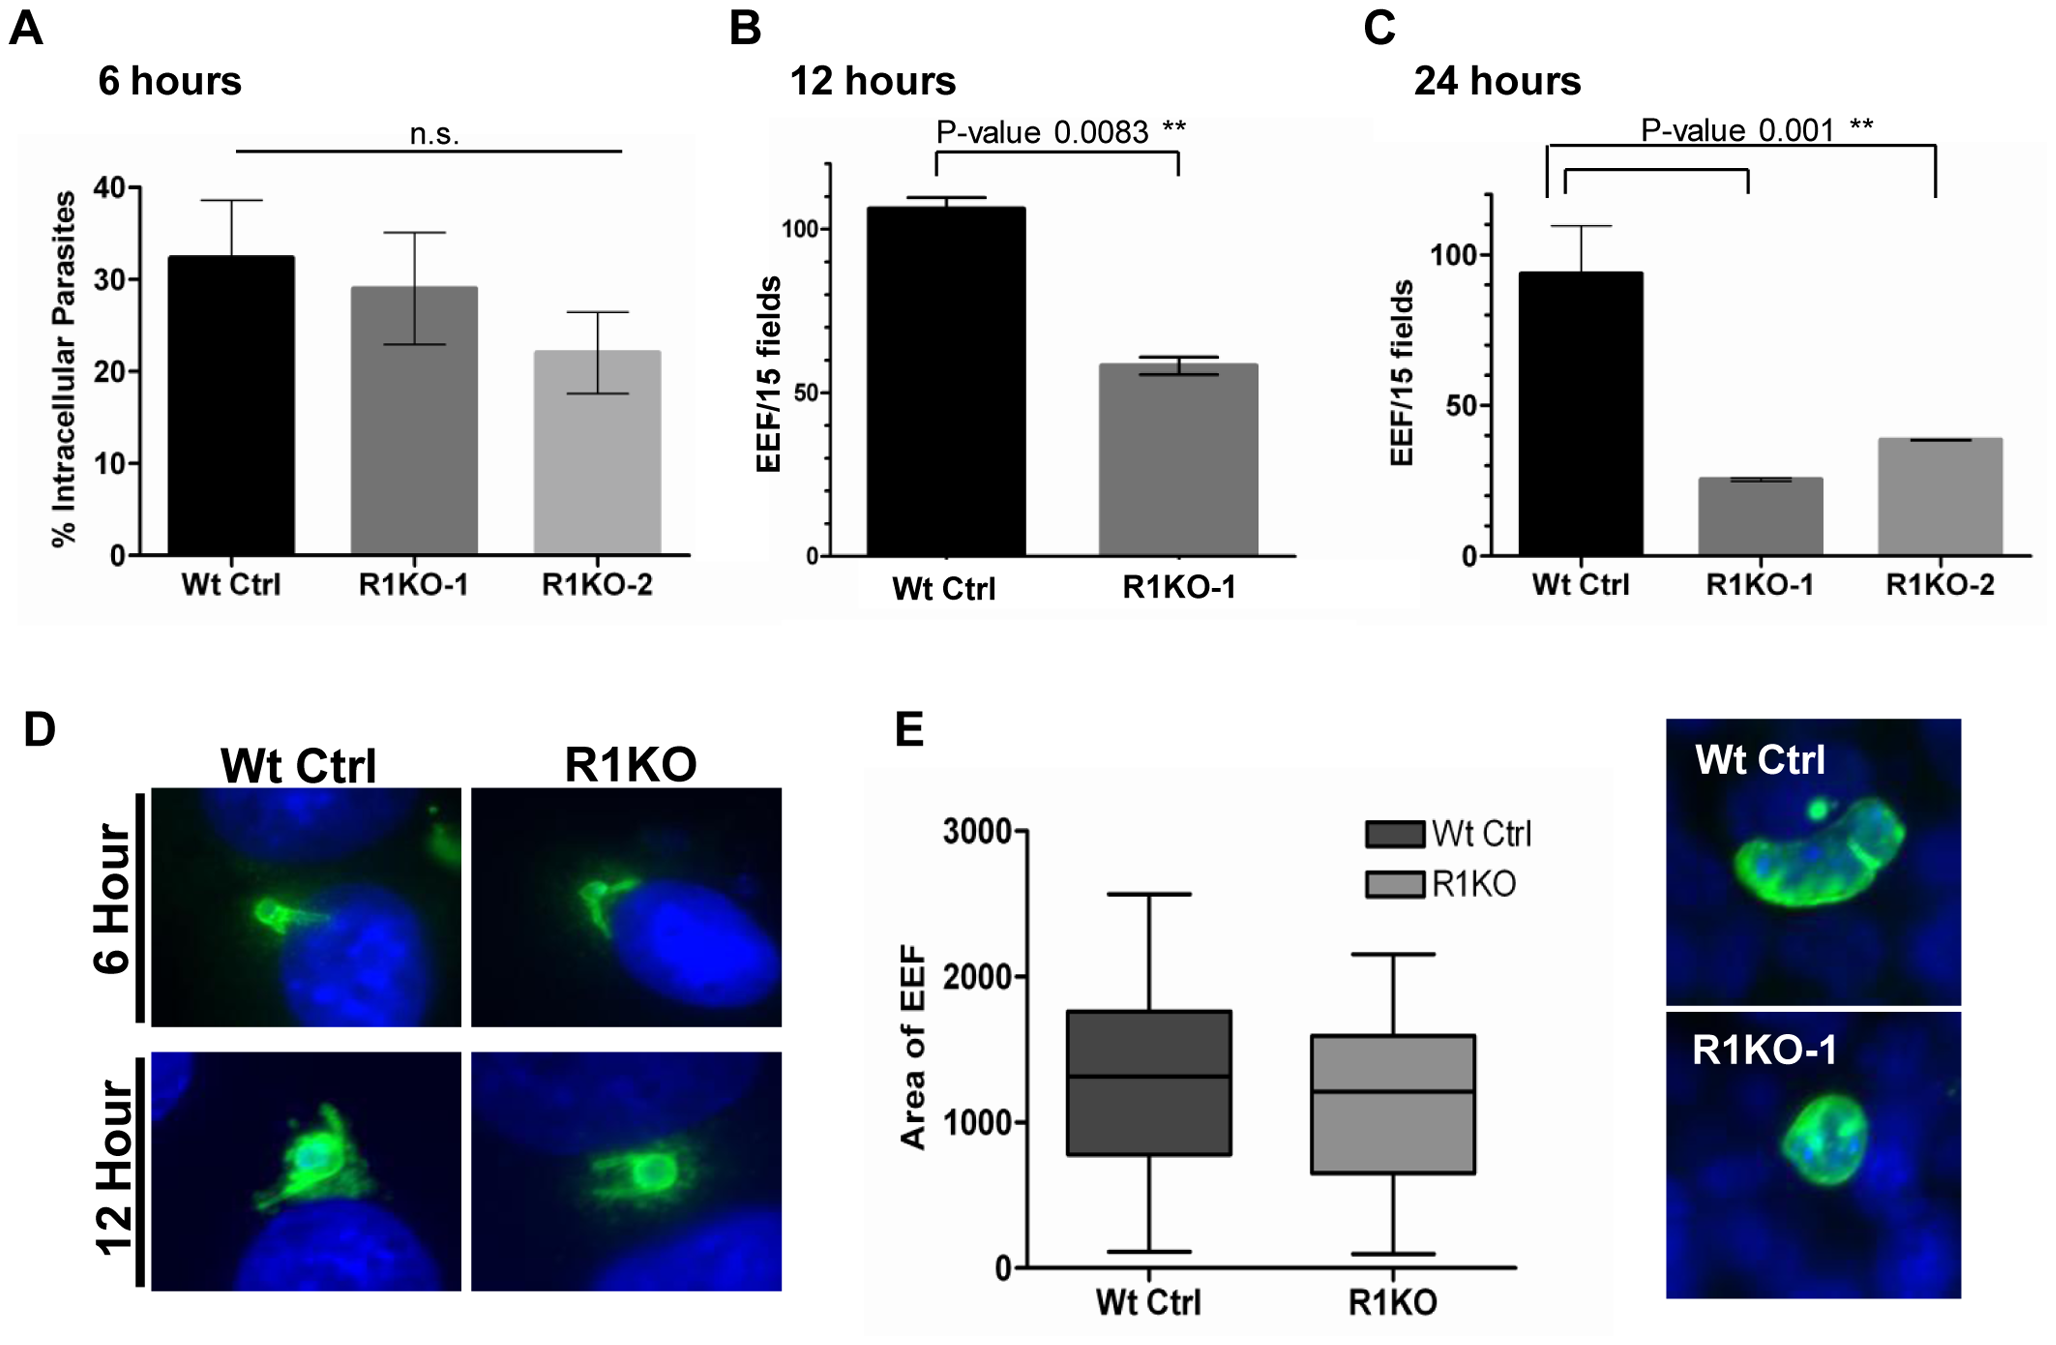 Development of <i>pyrom1(-)</i> EEF is significantly reduced within the first 24 hours of hepatic development.